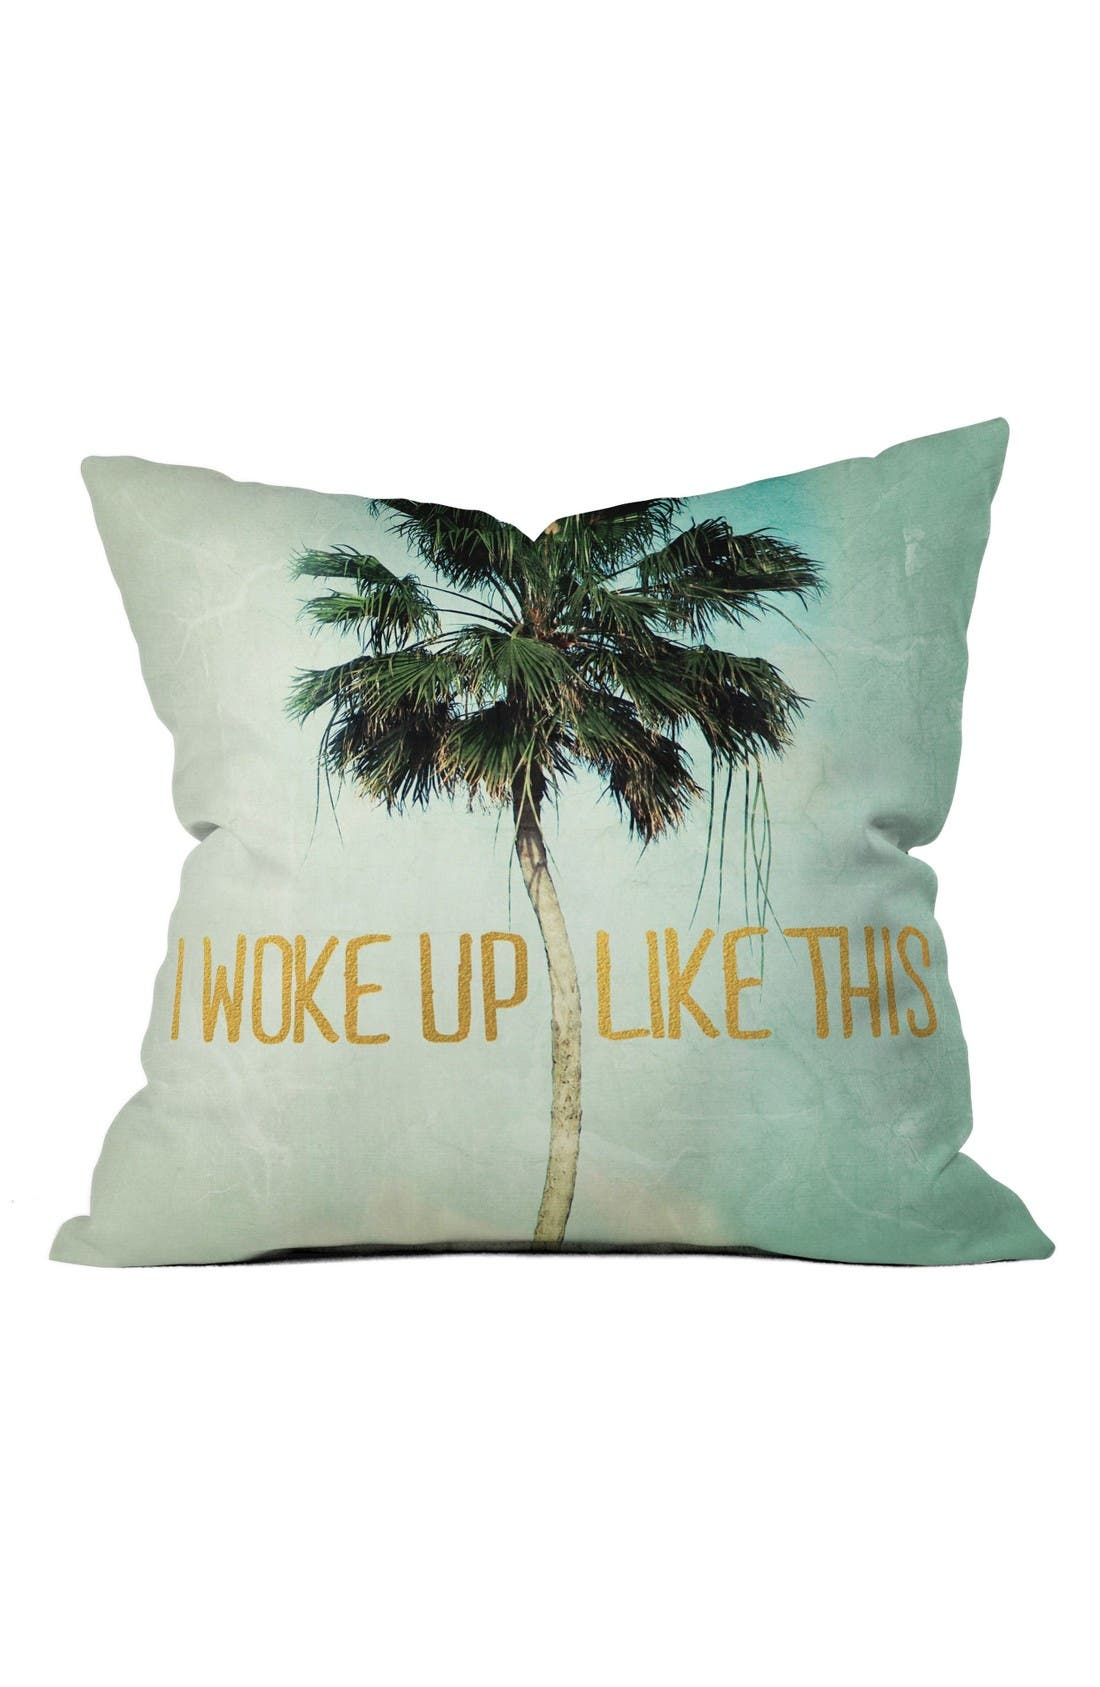 DENY DESIGNS Woke Up Like This Pillow